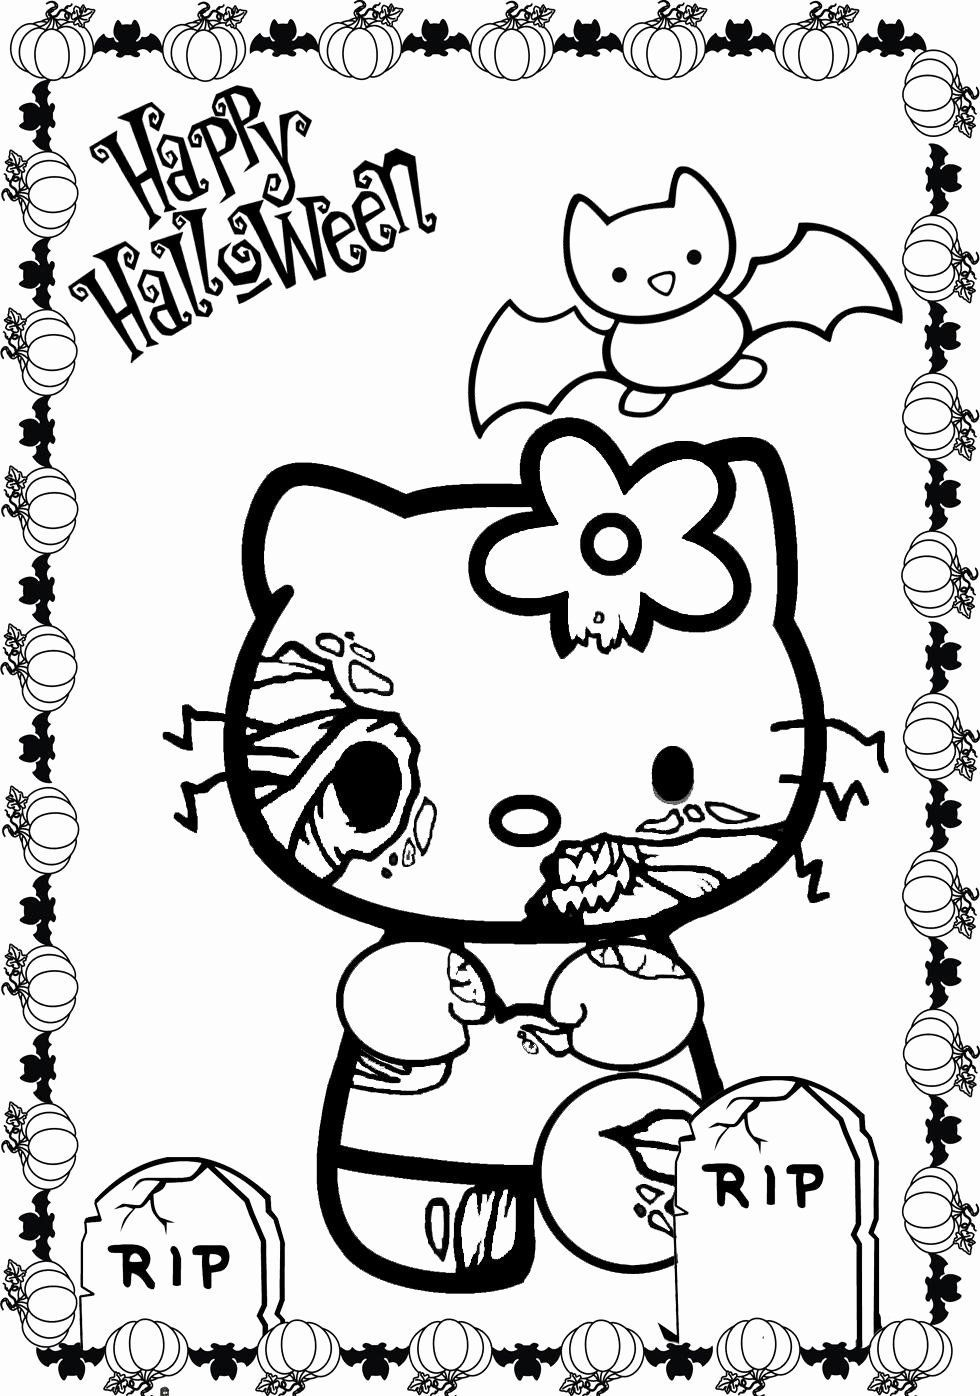 Halloween Kitty Coloring Pages New Coloring Hello Kitty Coloring Sheets Ideas Hallowe In 2020 Hello Kitty Colouring Pages Hello Kitty Coloring Halloween Coloring Book